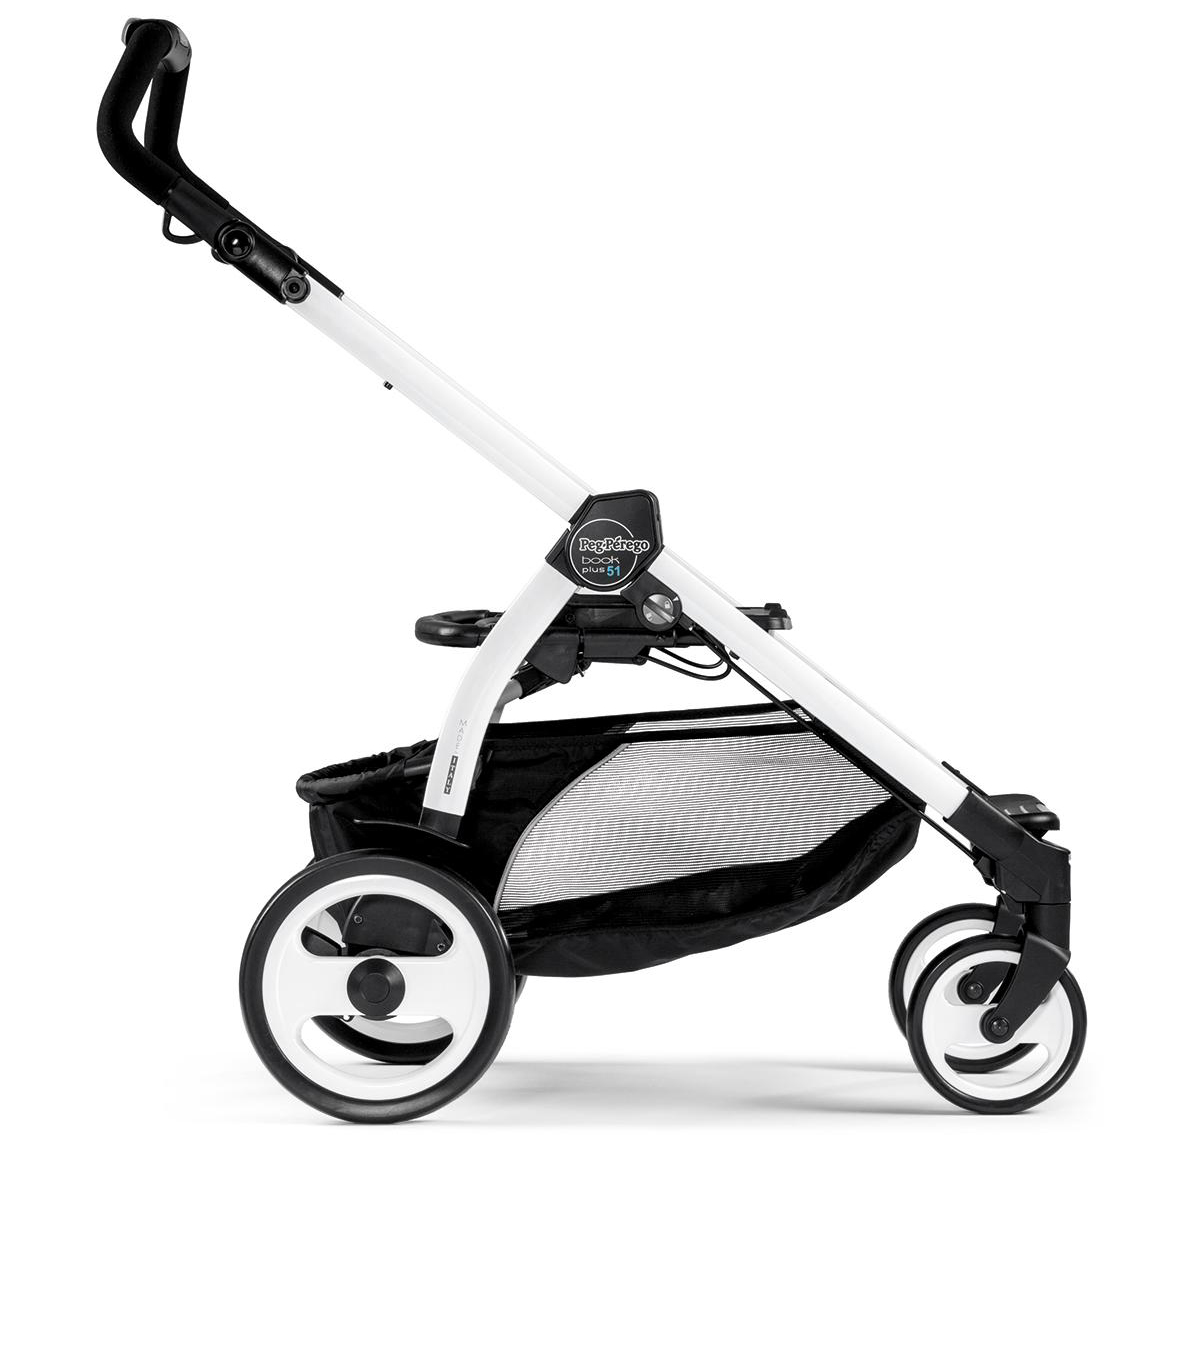 hr_2017_03_30_peg_perego_book_plus_51_black_white.jpg